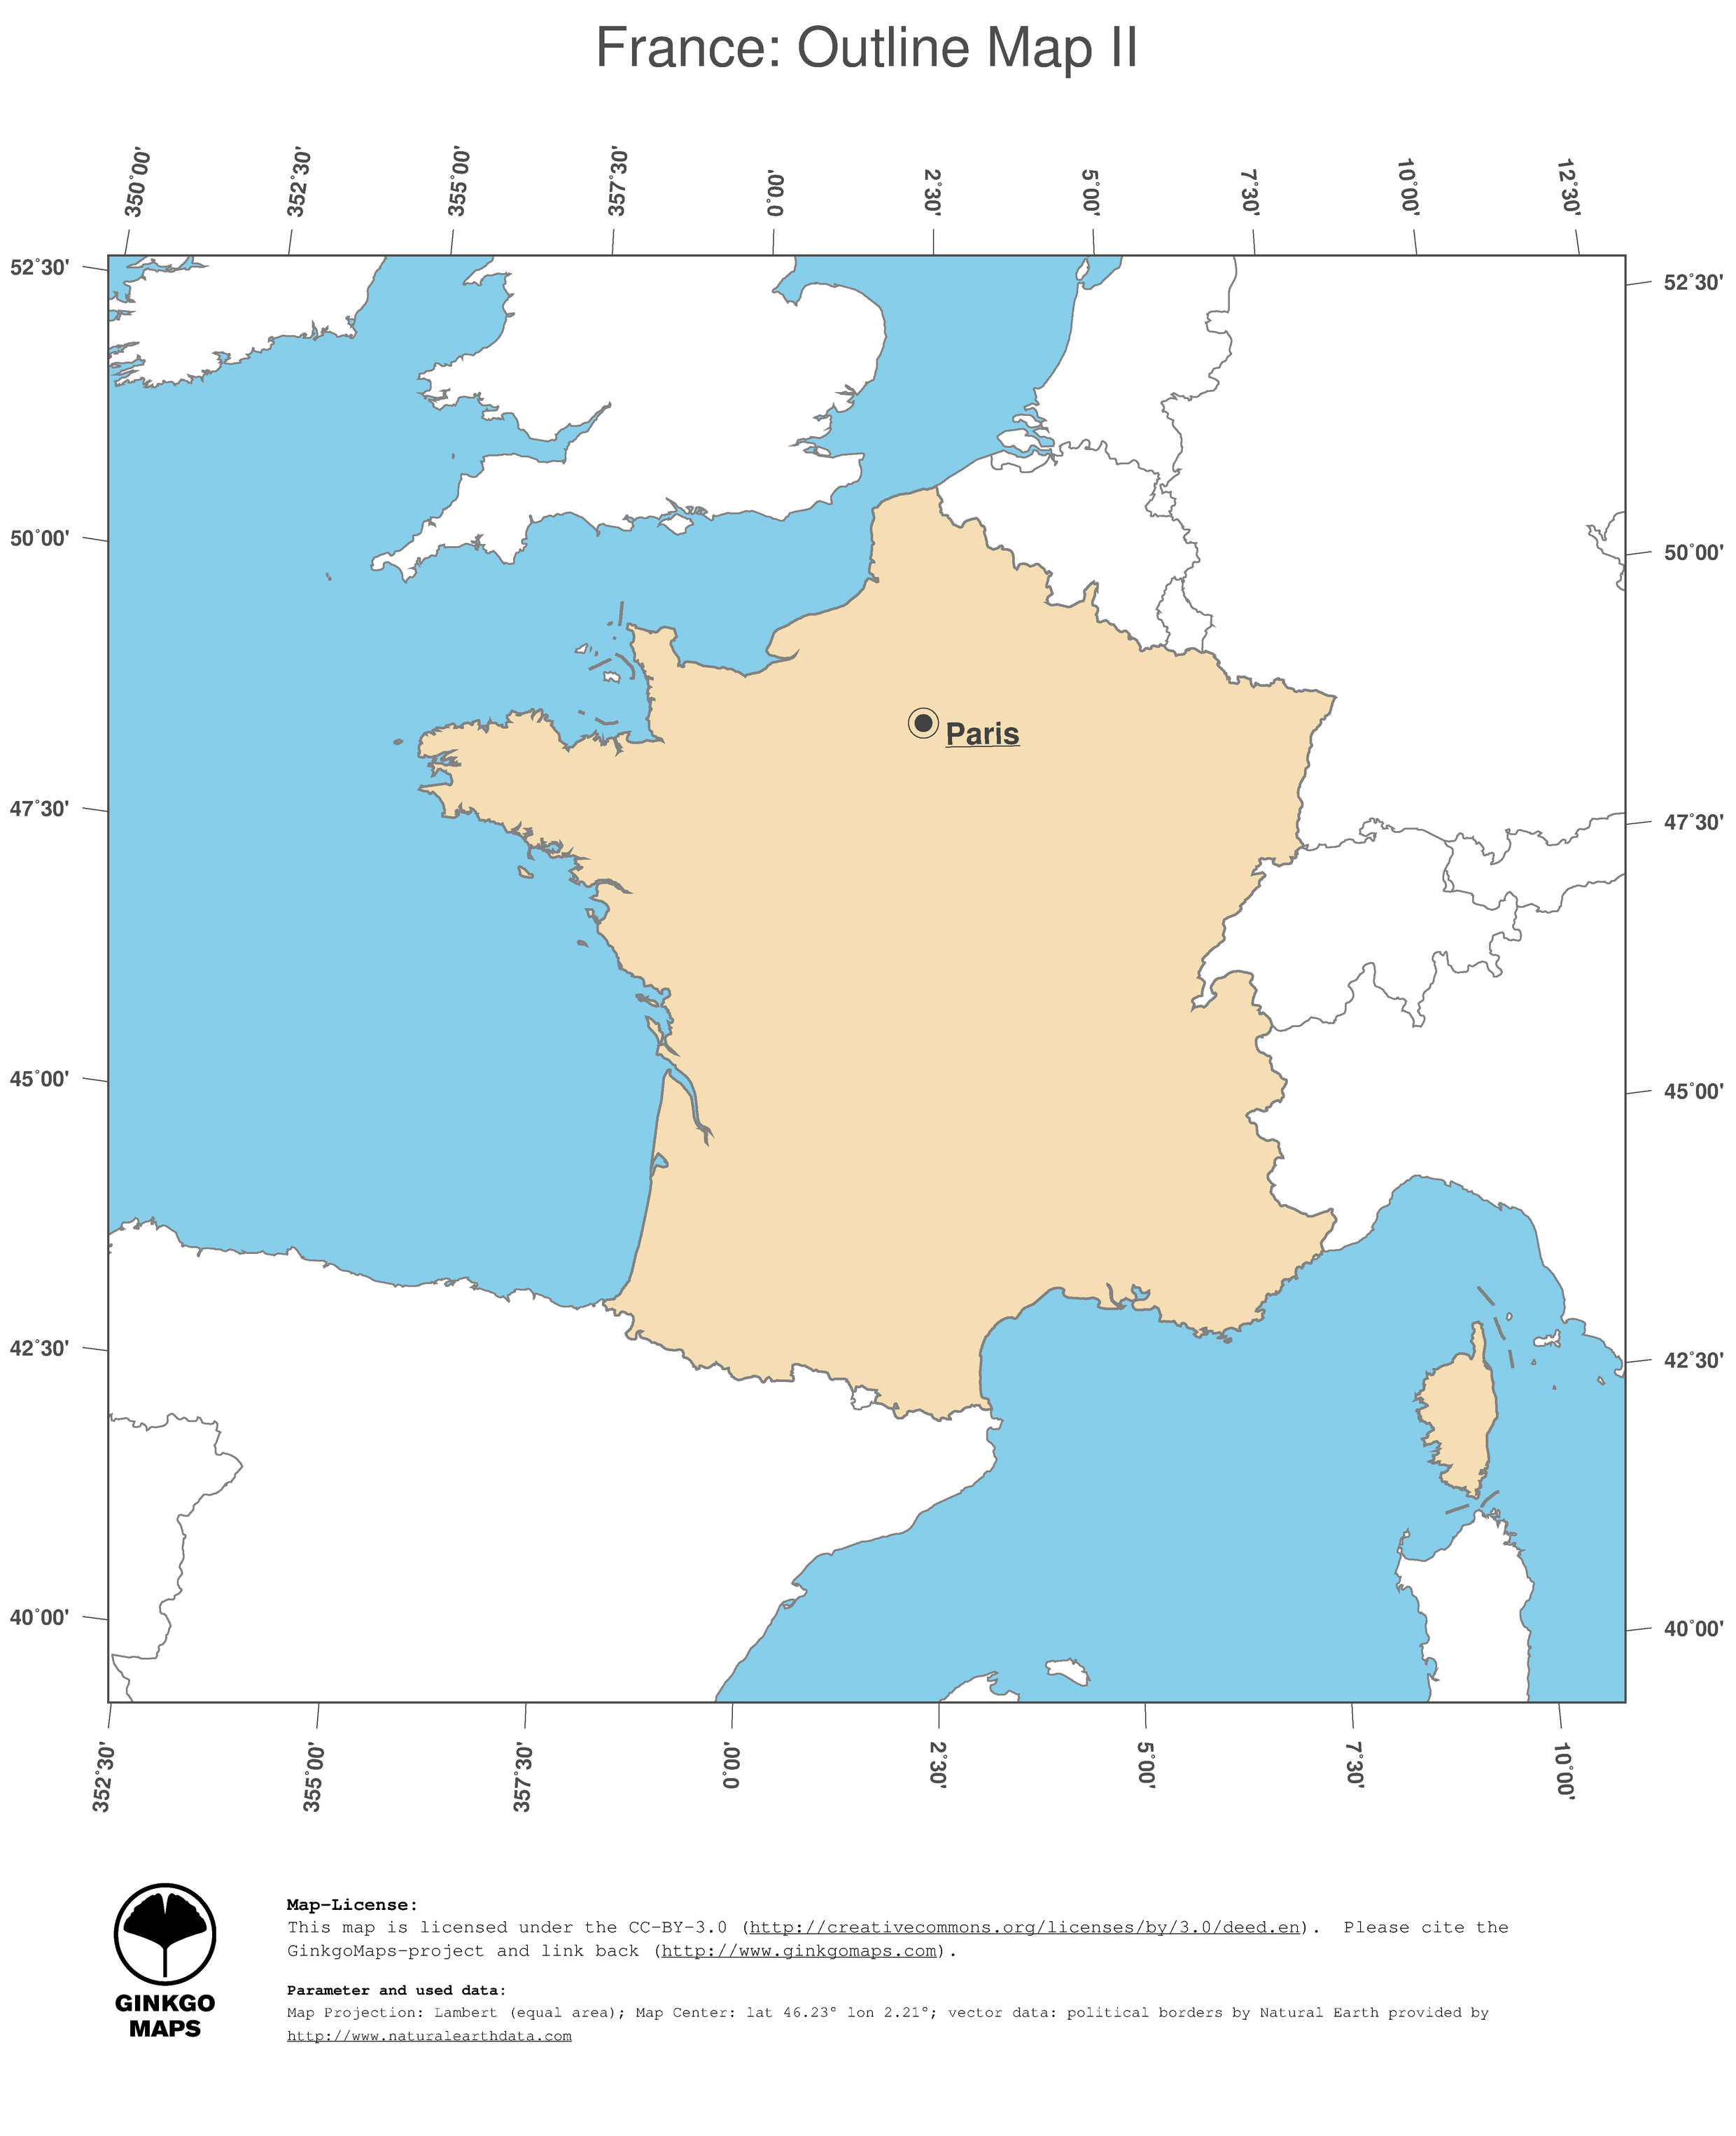 A4 Map Of France.Top 10 Punto Medio Noticias France Map Outline